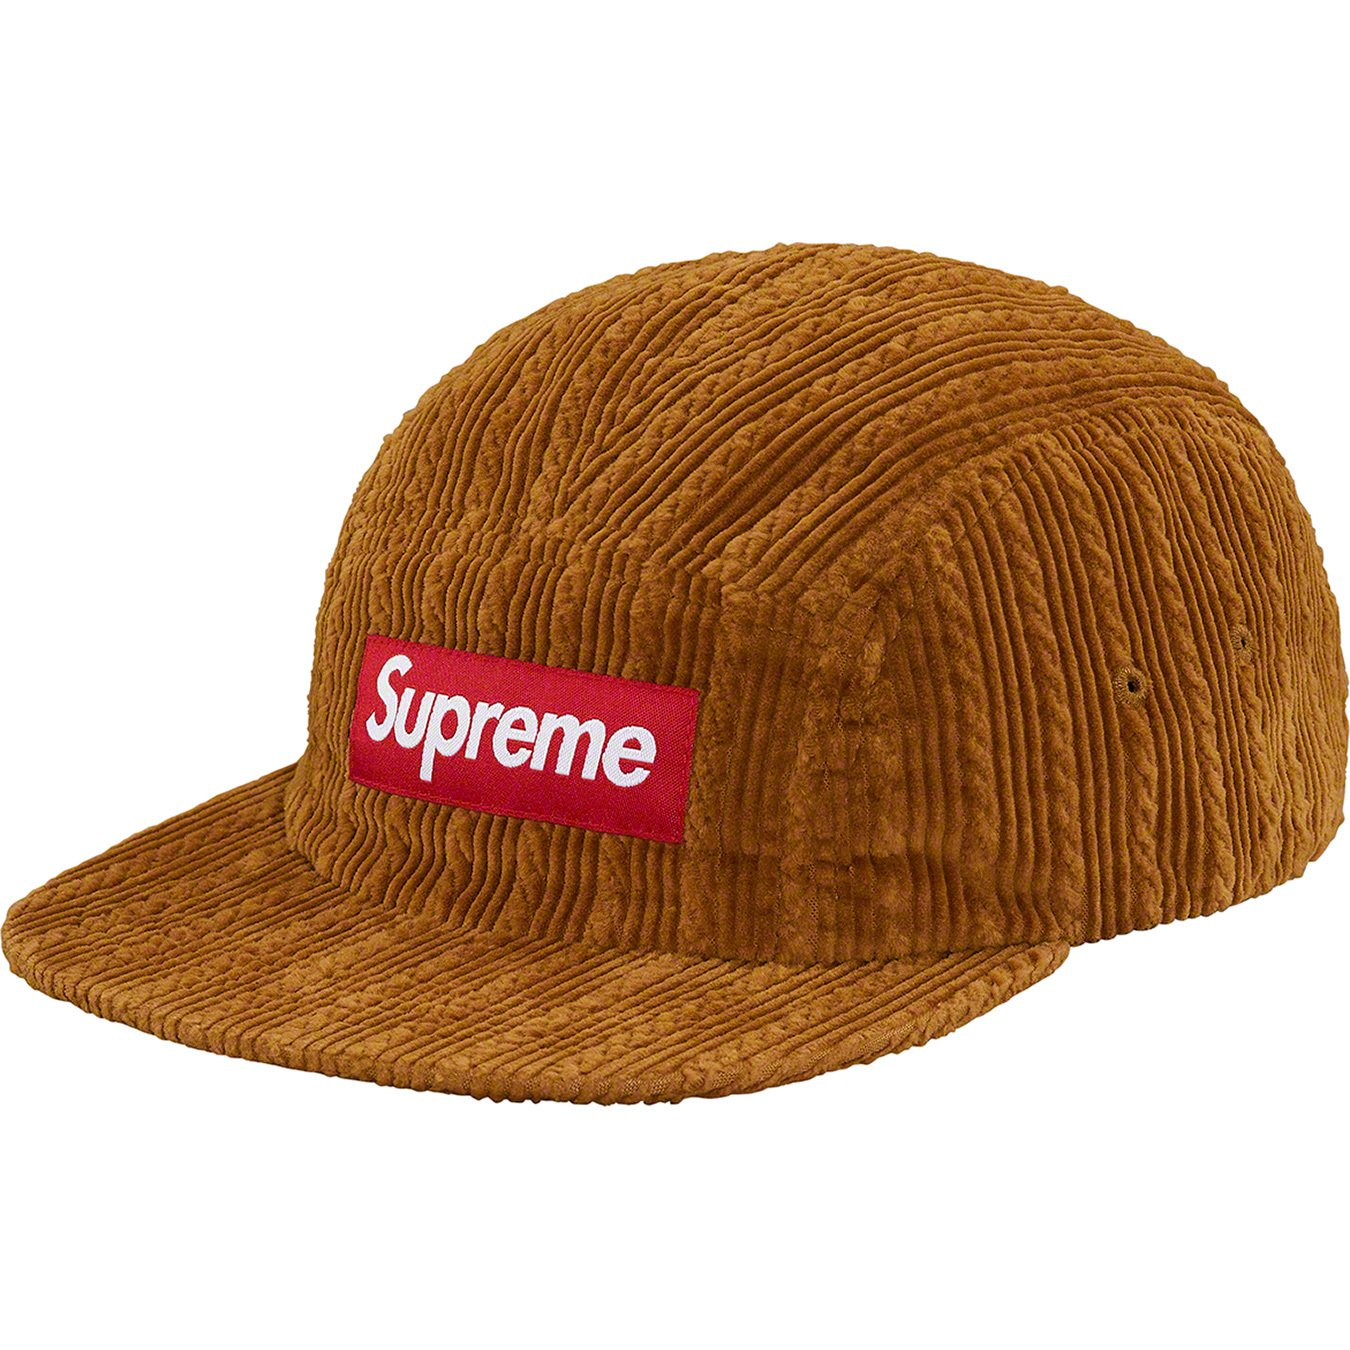 supreme-19ss-spring-summer-rope-corduroy-camp-cap